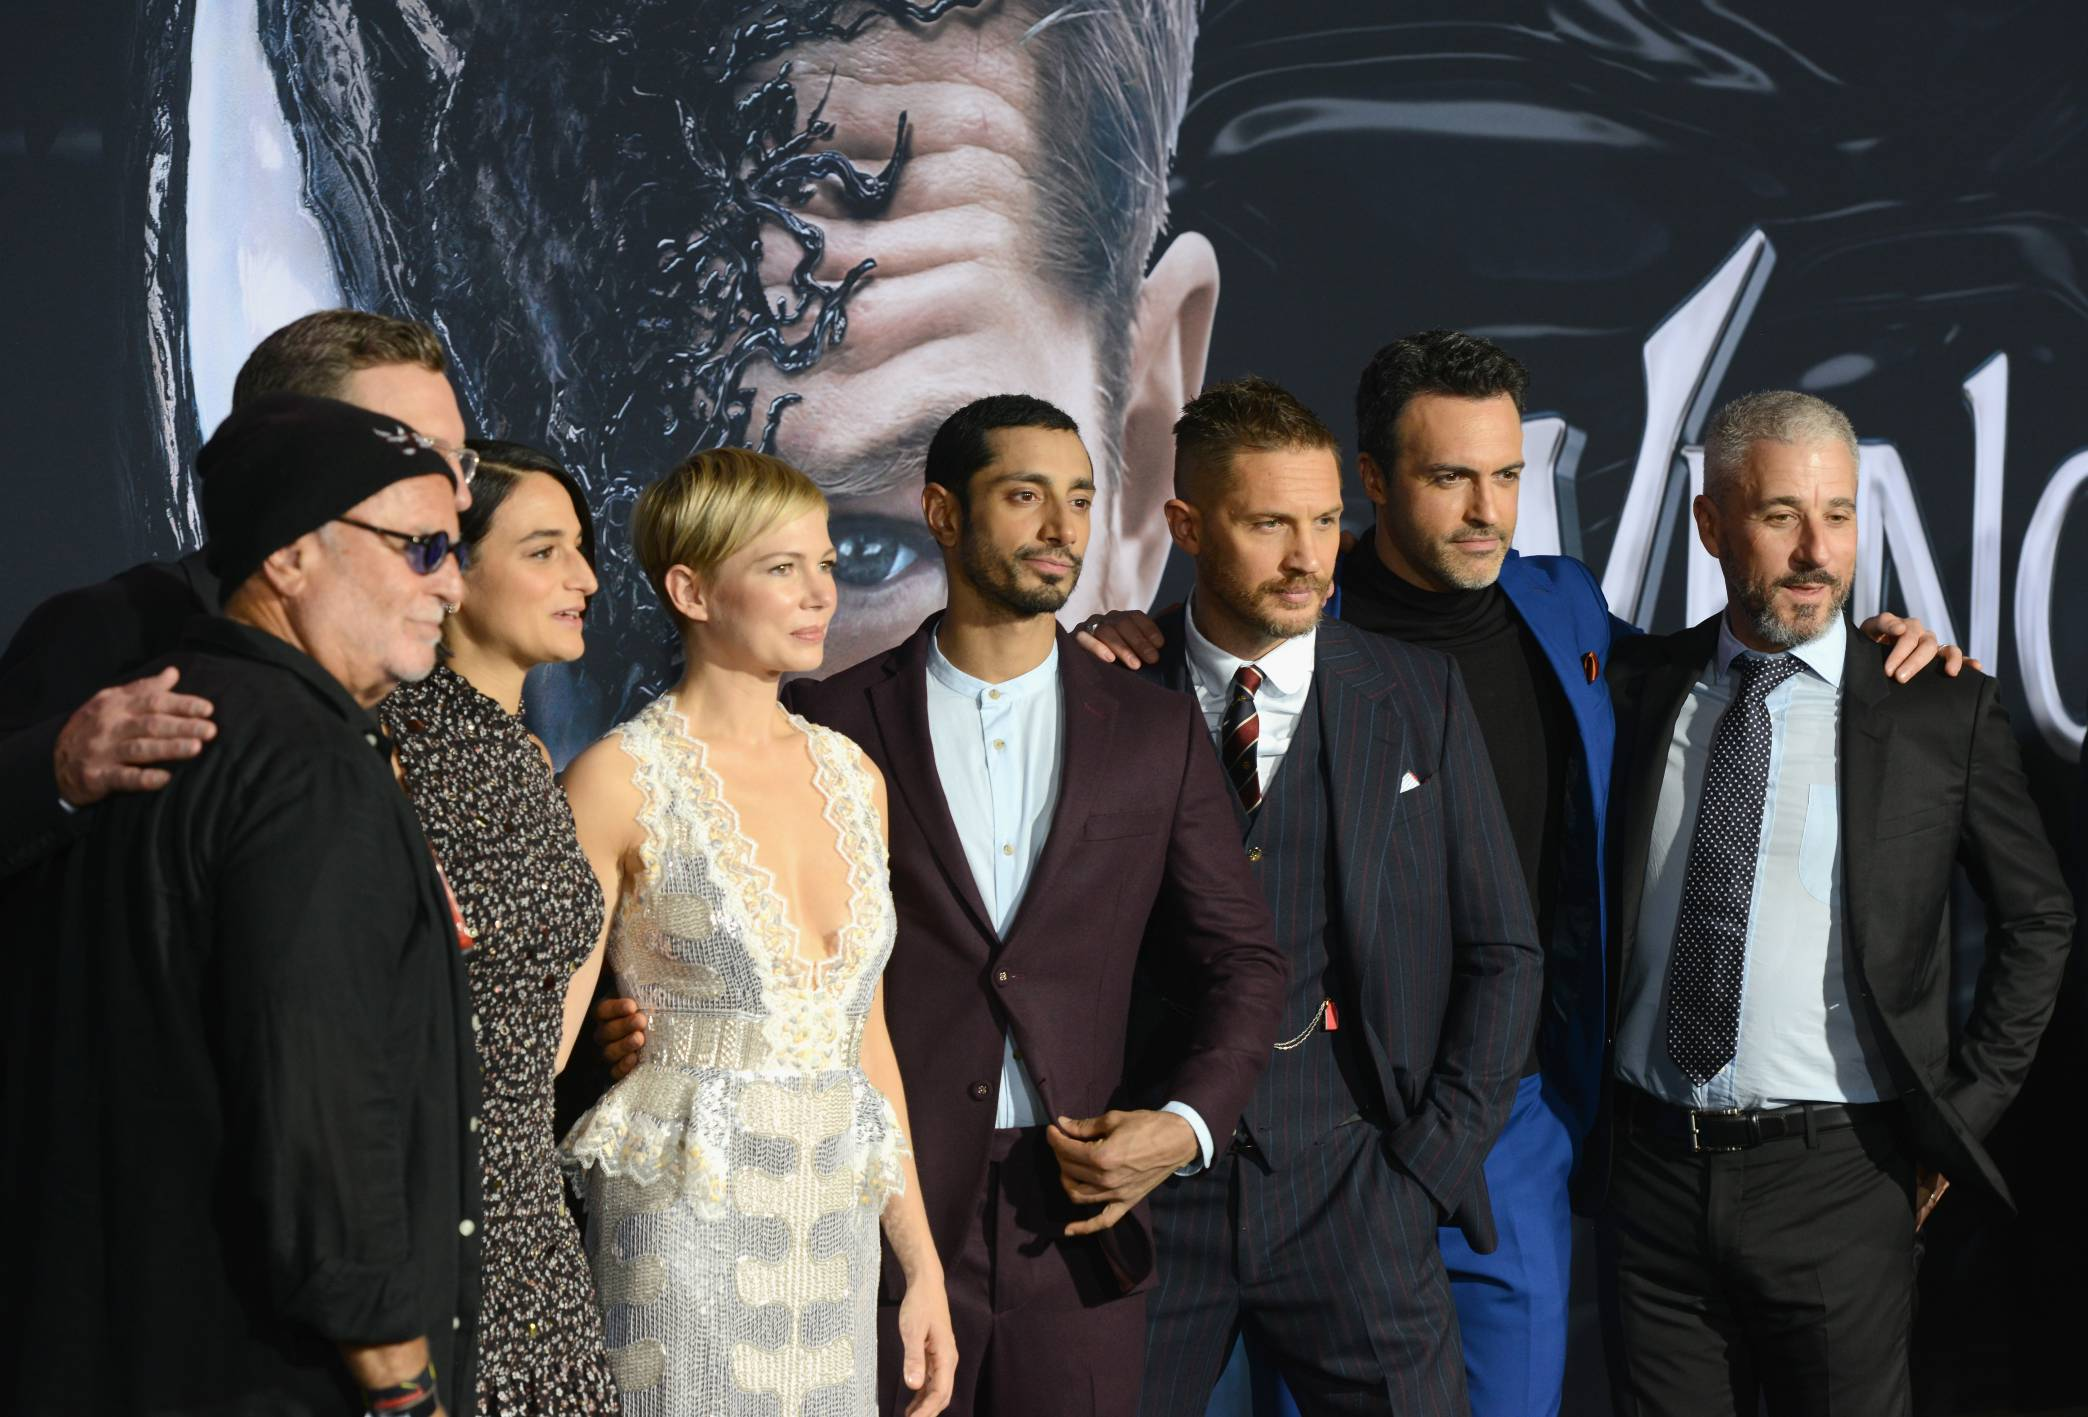 'Venom' Is Once Again Number 1 at the Box Office